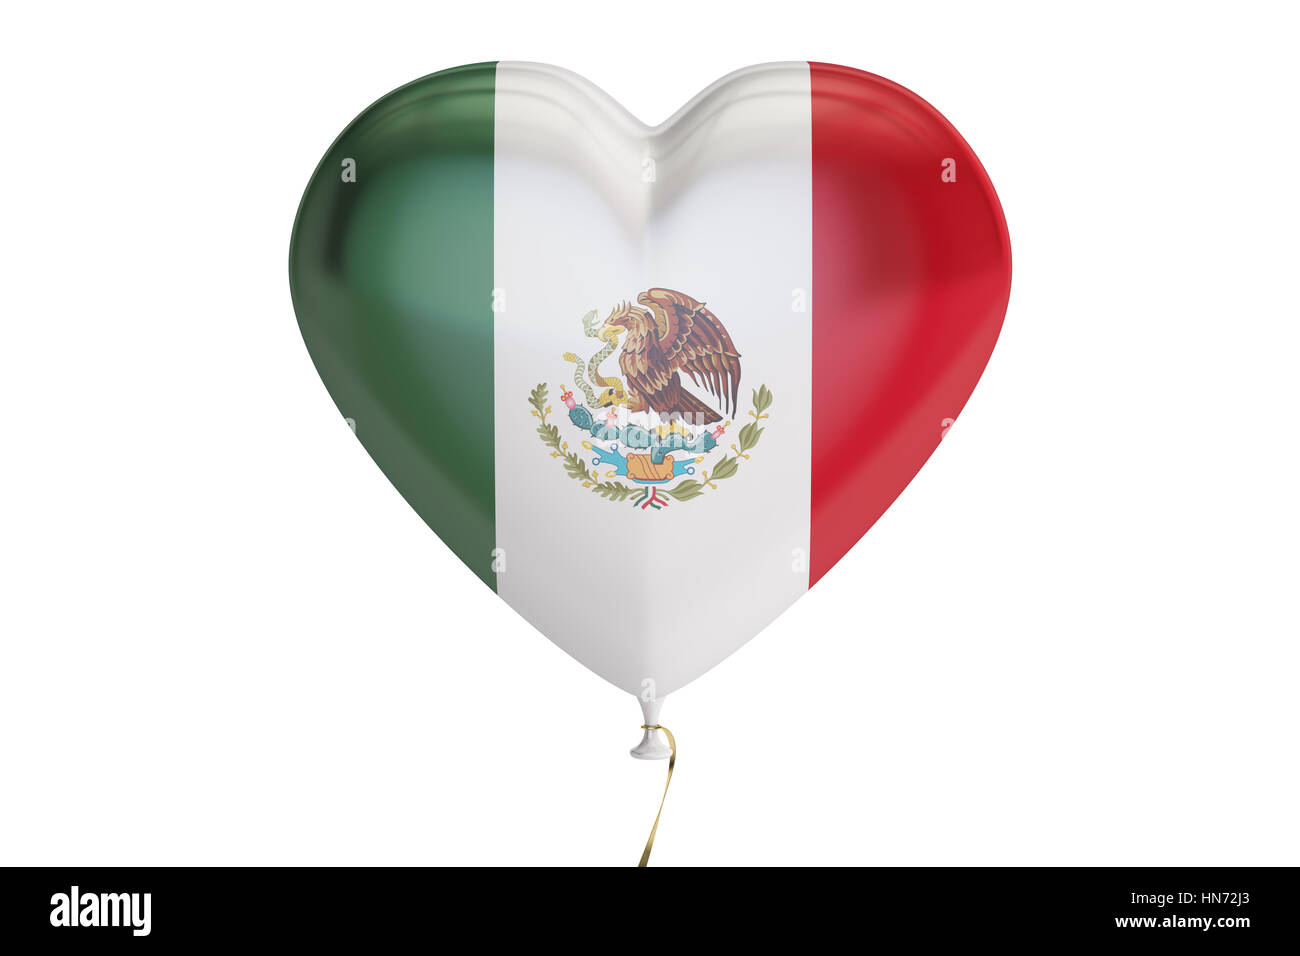 balloon with Mexico flag in the shape of heart, 3D rendering isolated on white background - Stock Image